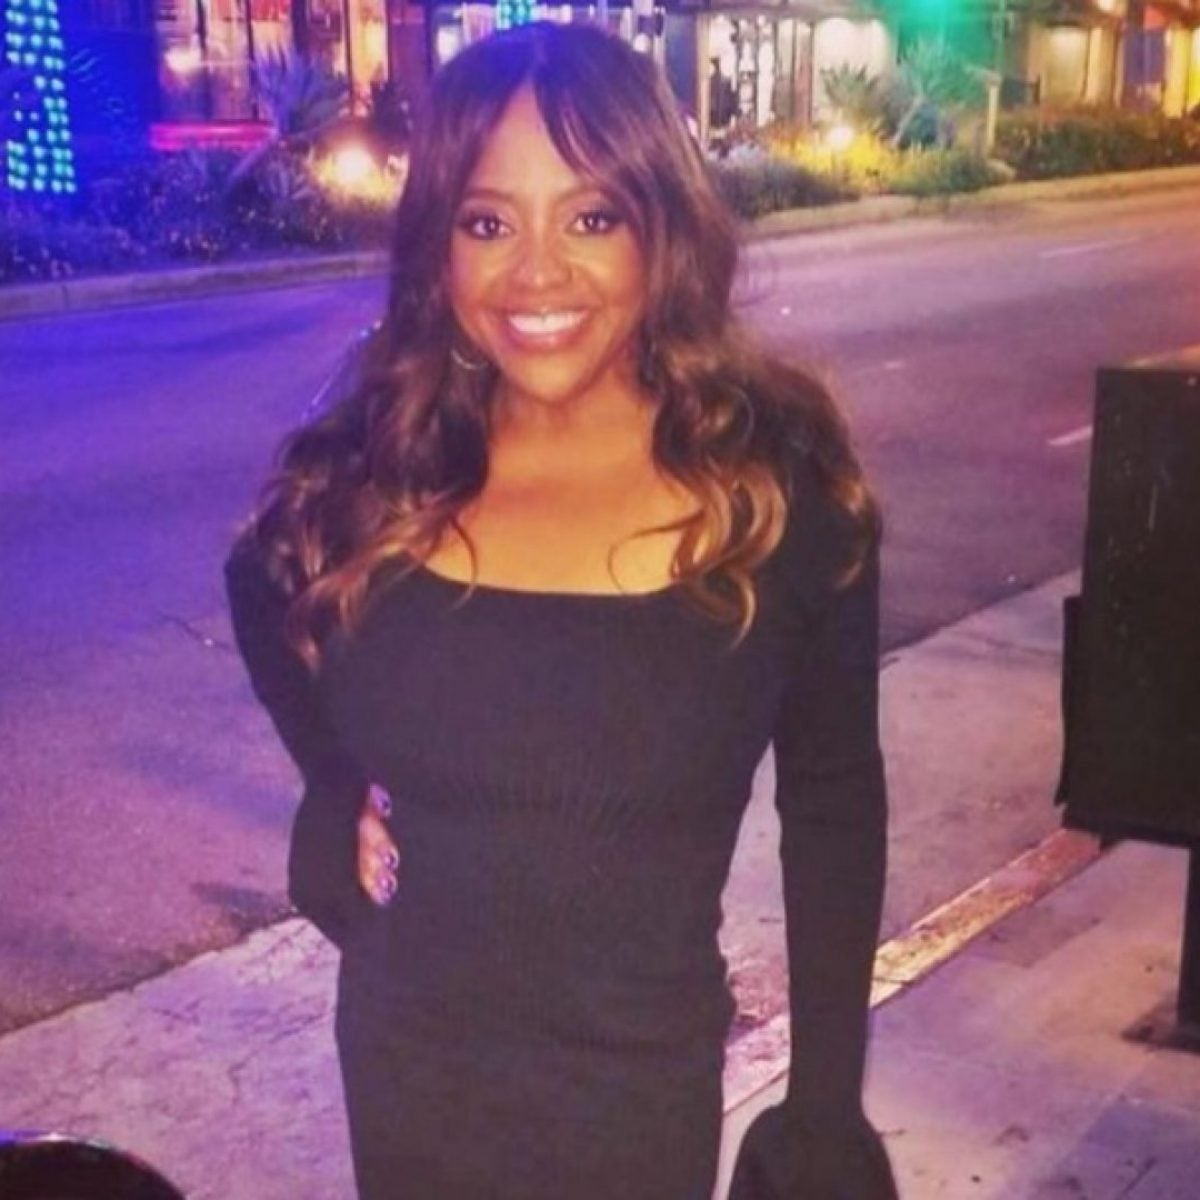 sherri-shephard-opens-up-about-her-weight-loss-and-shows-off-her-transformation-in-a-new-video